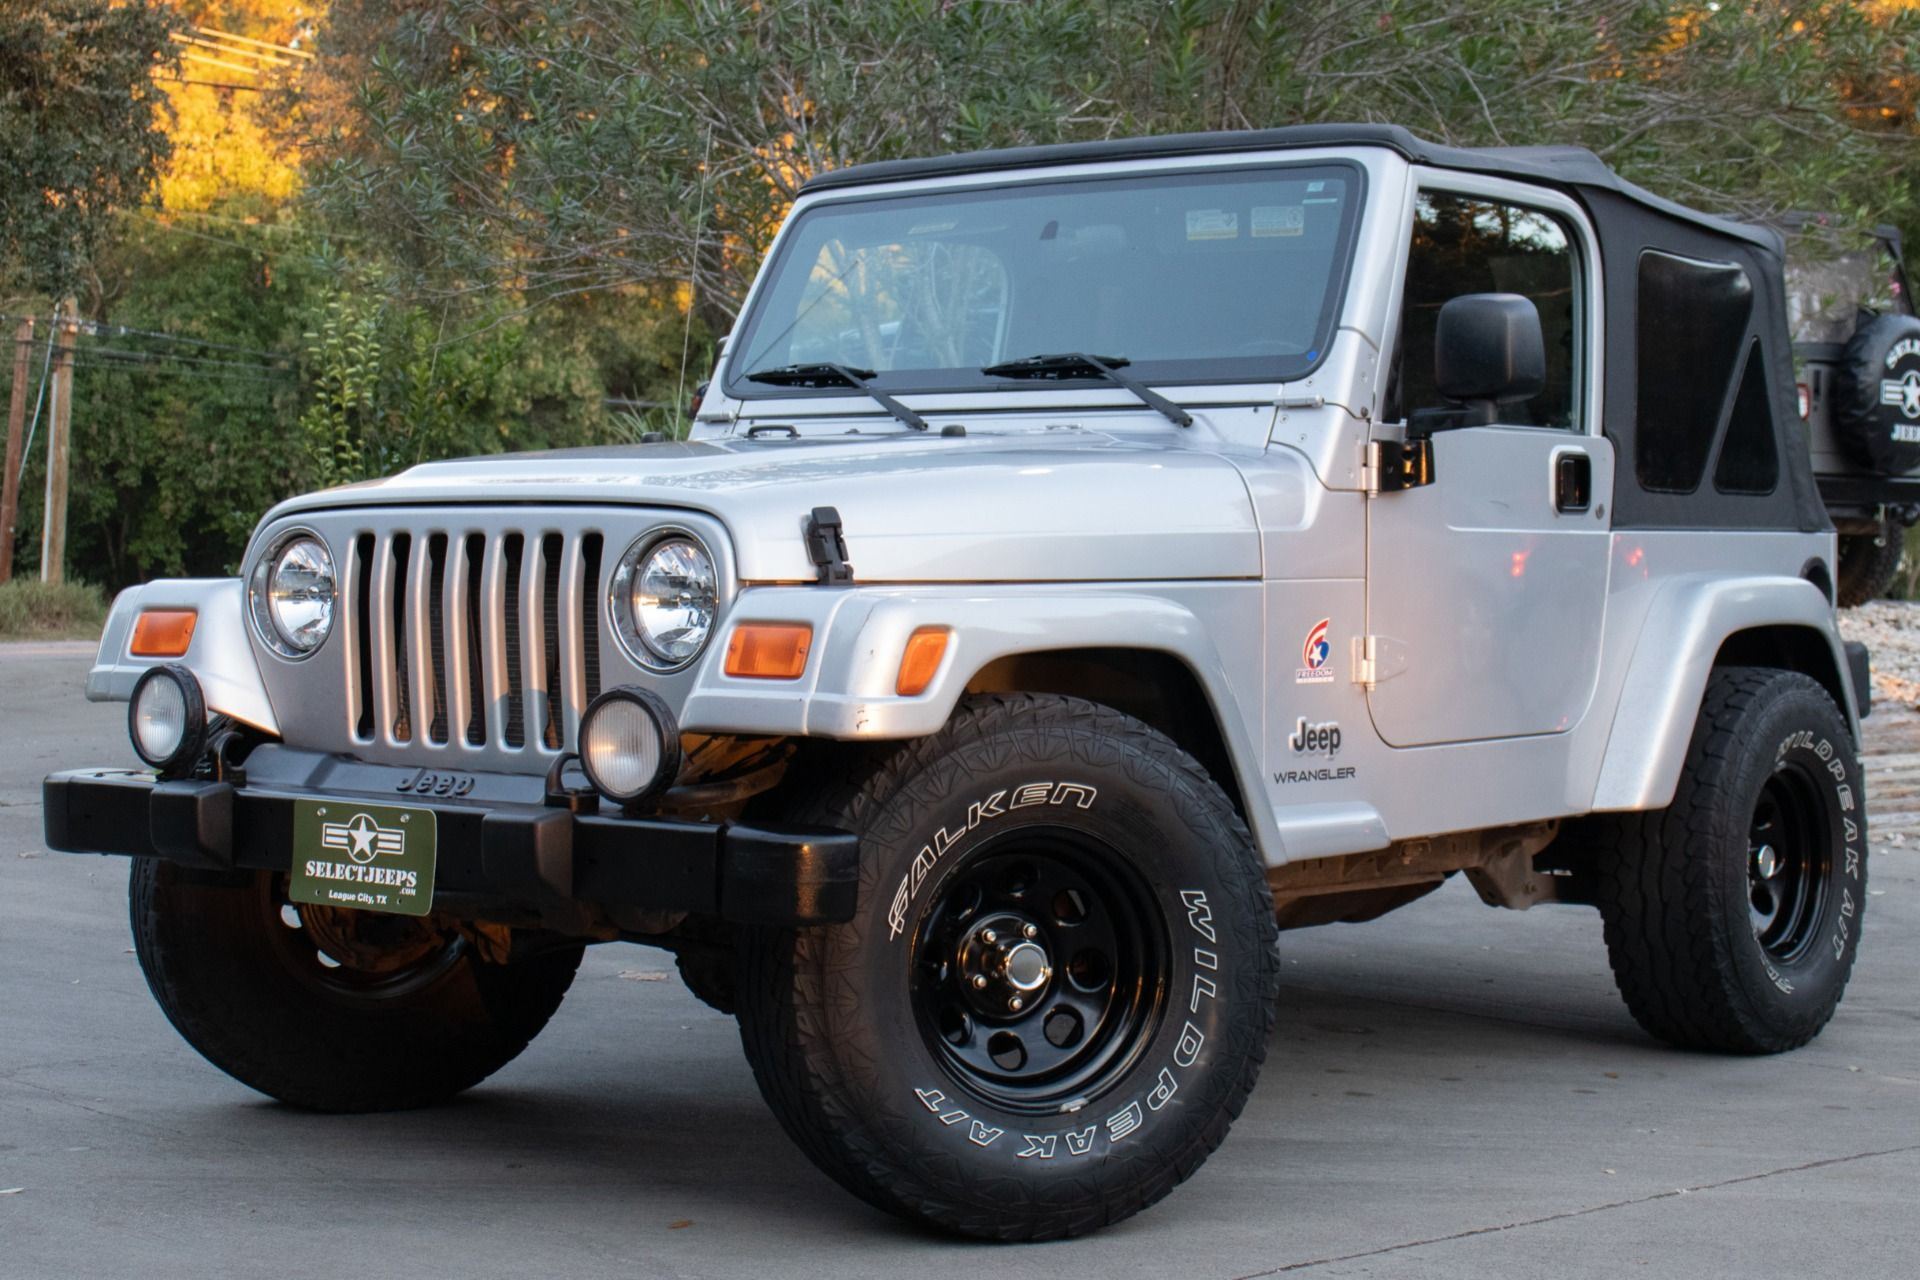 Used 2003 Jeep Wrangler X Freedom Edition For Sale Select Jeeps Inc With Images Jeep Jeep Wrangler X Jeep Wrangler